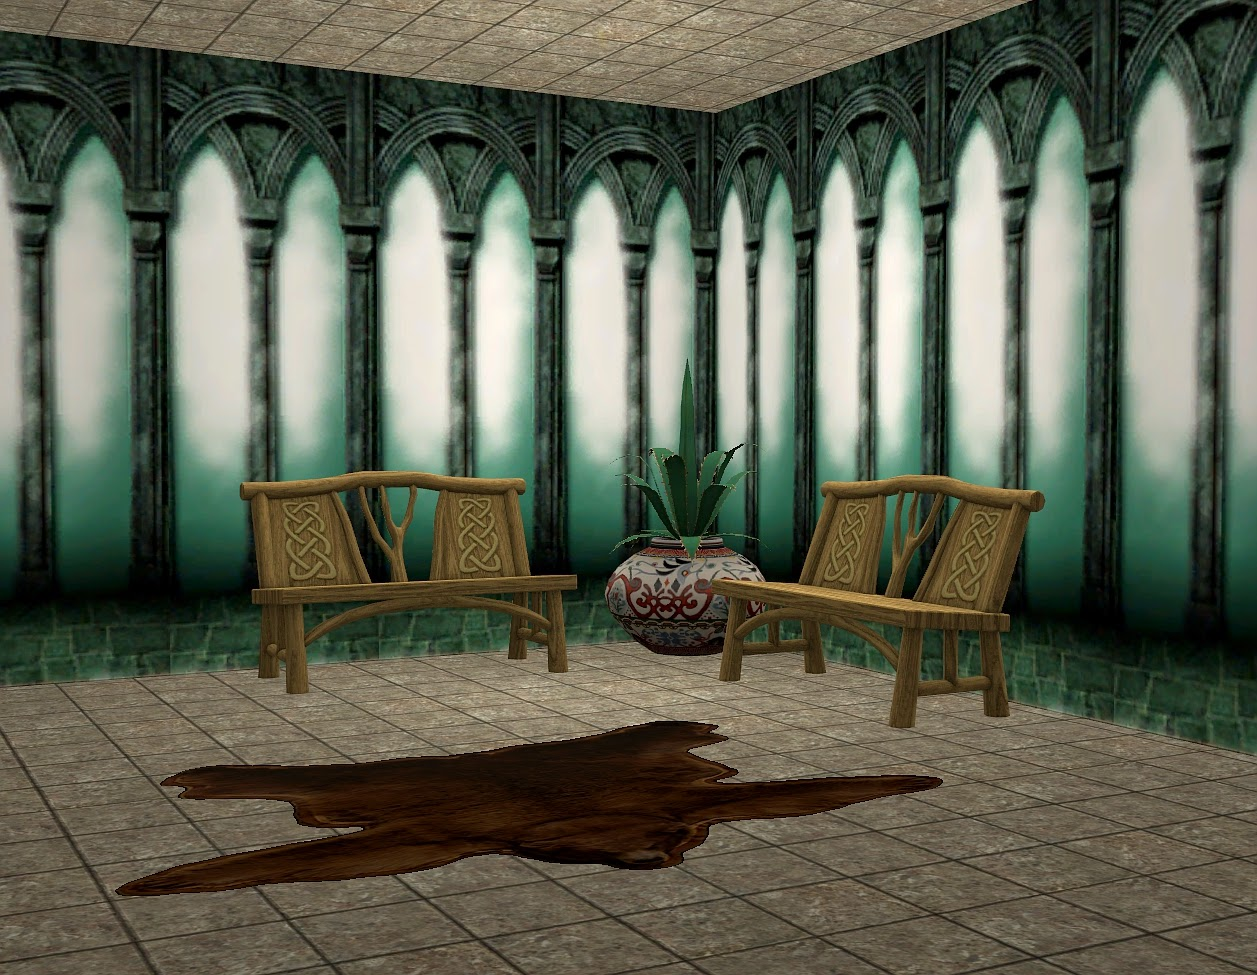 theninthwavesims the sims 2 harry potter and the chamber of mural but the middle piece was seamless and looked better than the mural so i decided to make it a full wall found in paneling costing 8 per square